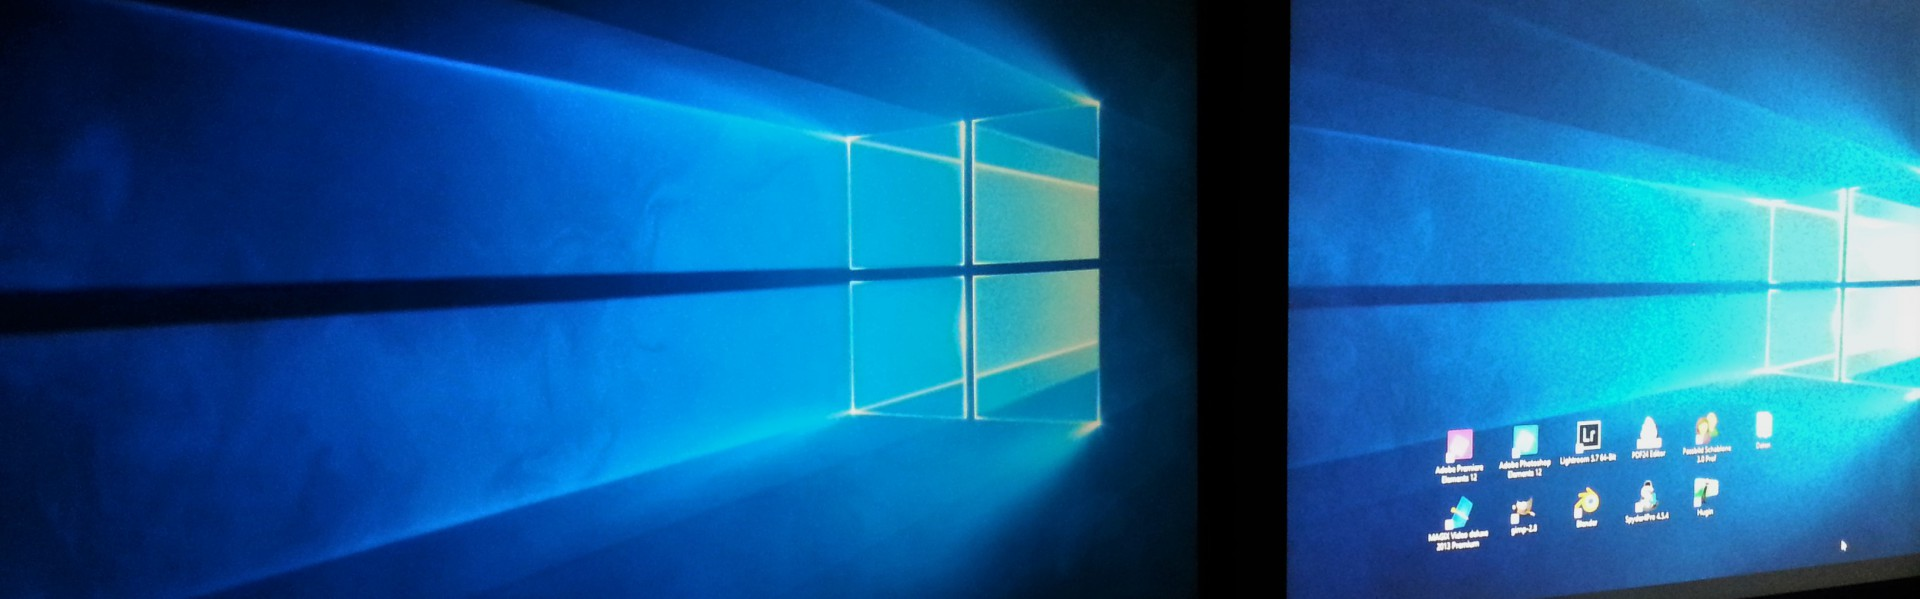 Technik - Windows 10